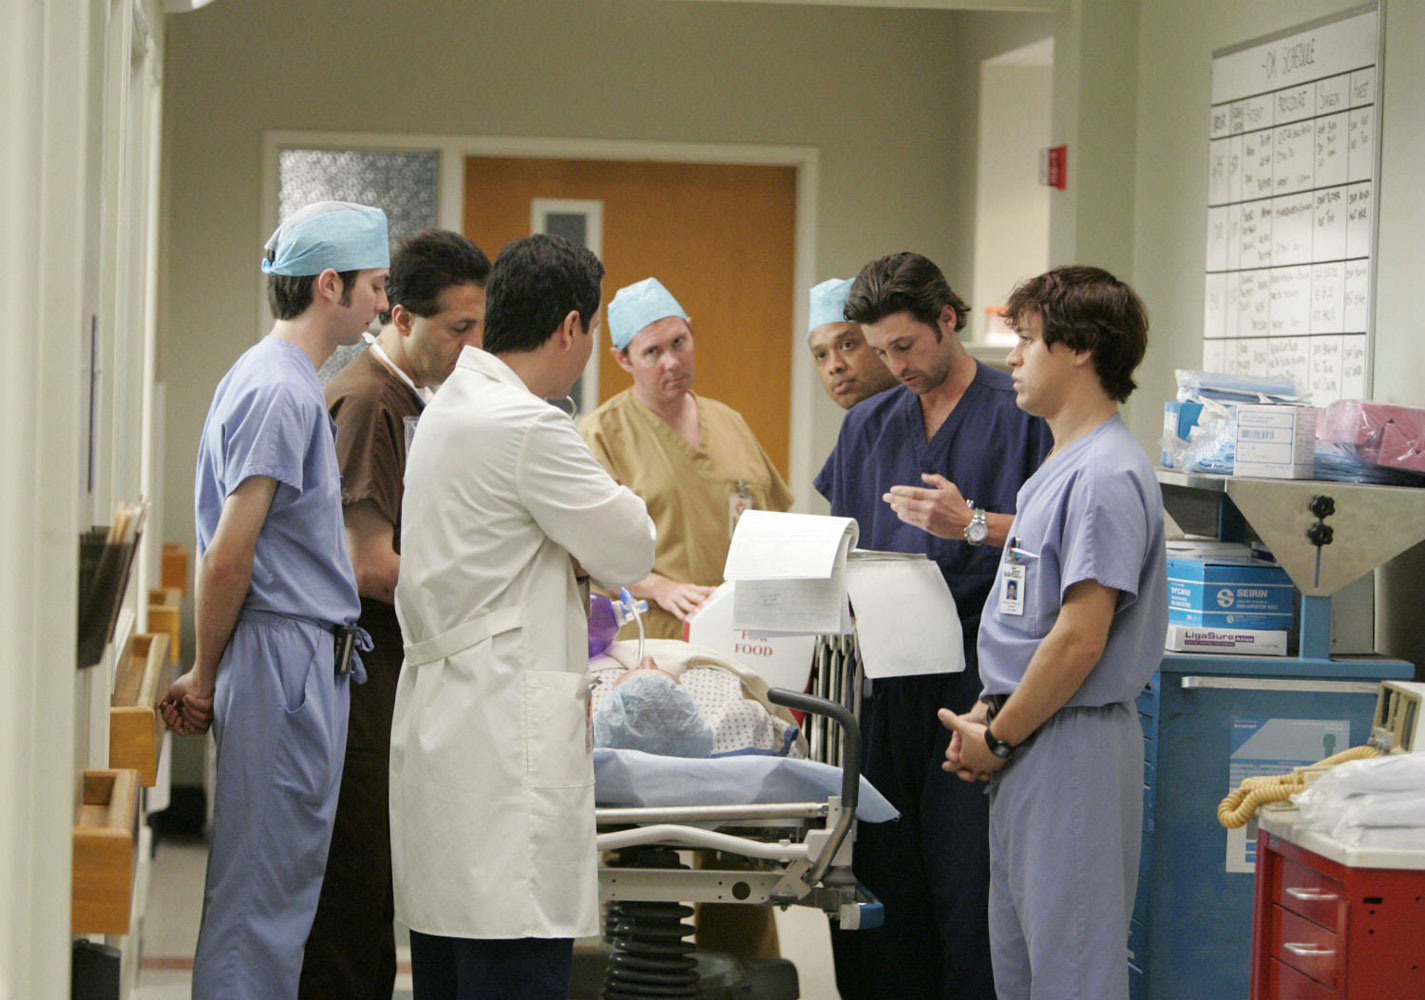 scrubs season 6 episode guide